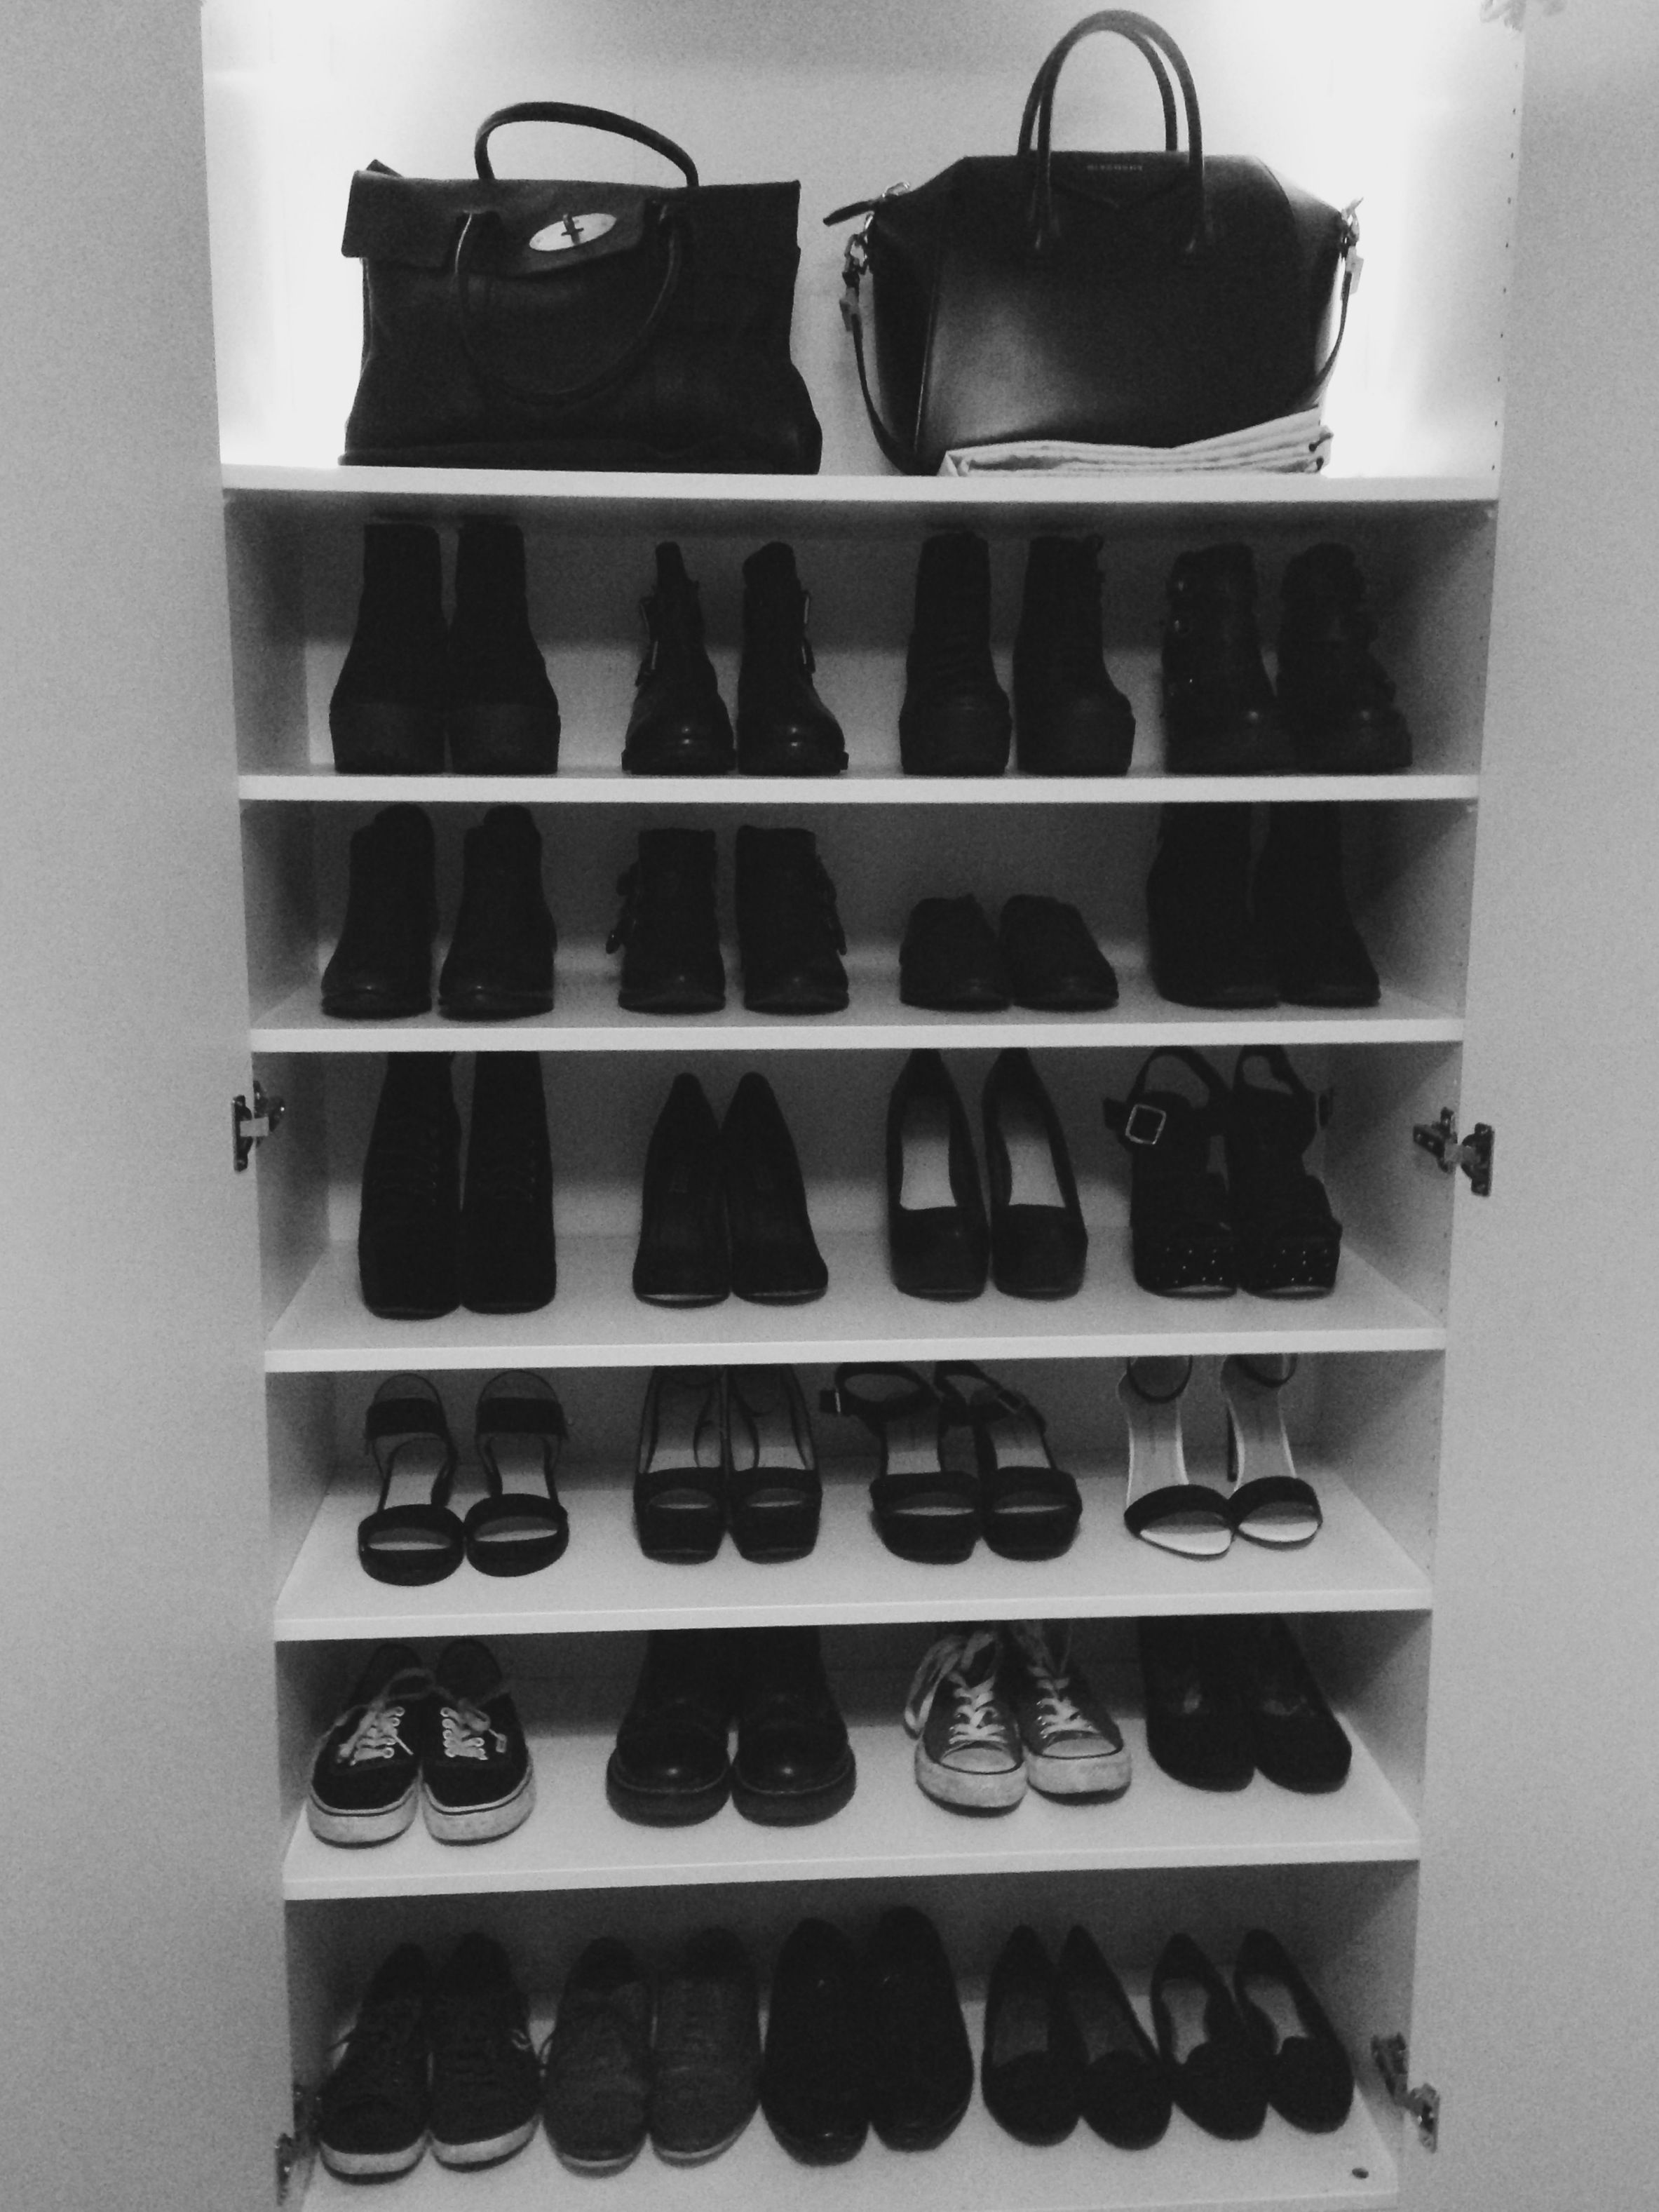 Le Meilleur How I Store My Favourite Shoes And Bags Ikea Pax Wardrobe Ce Mois Ci